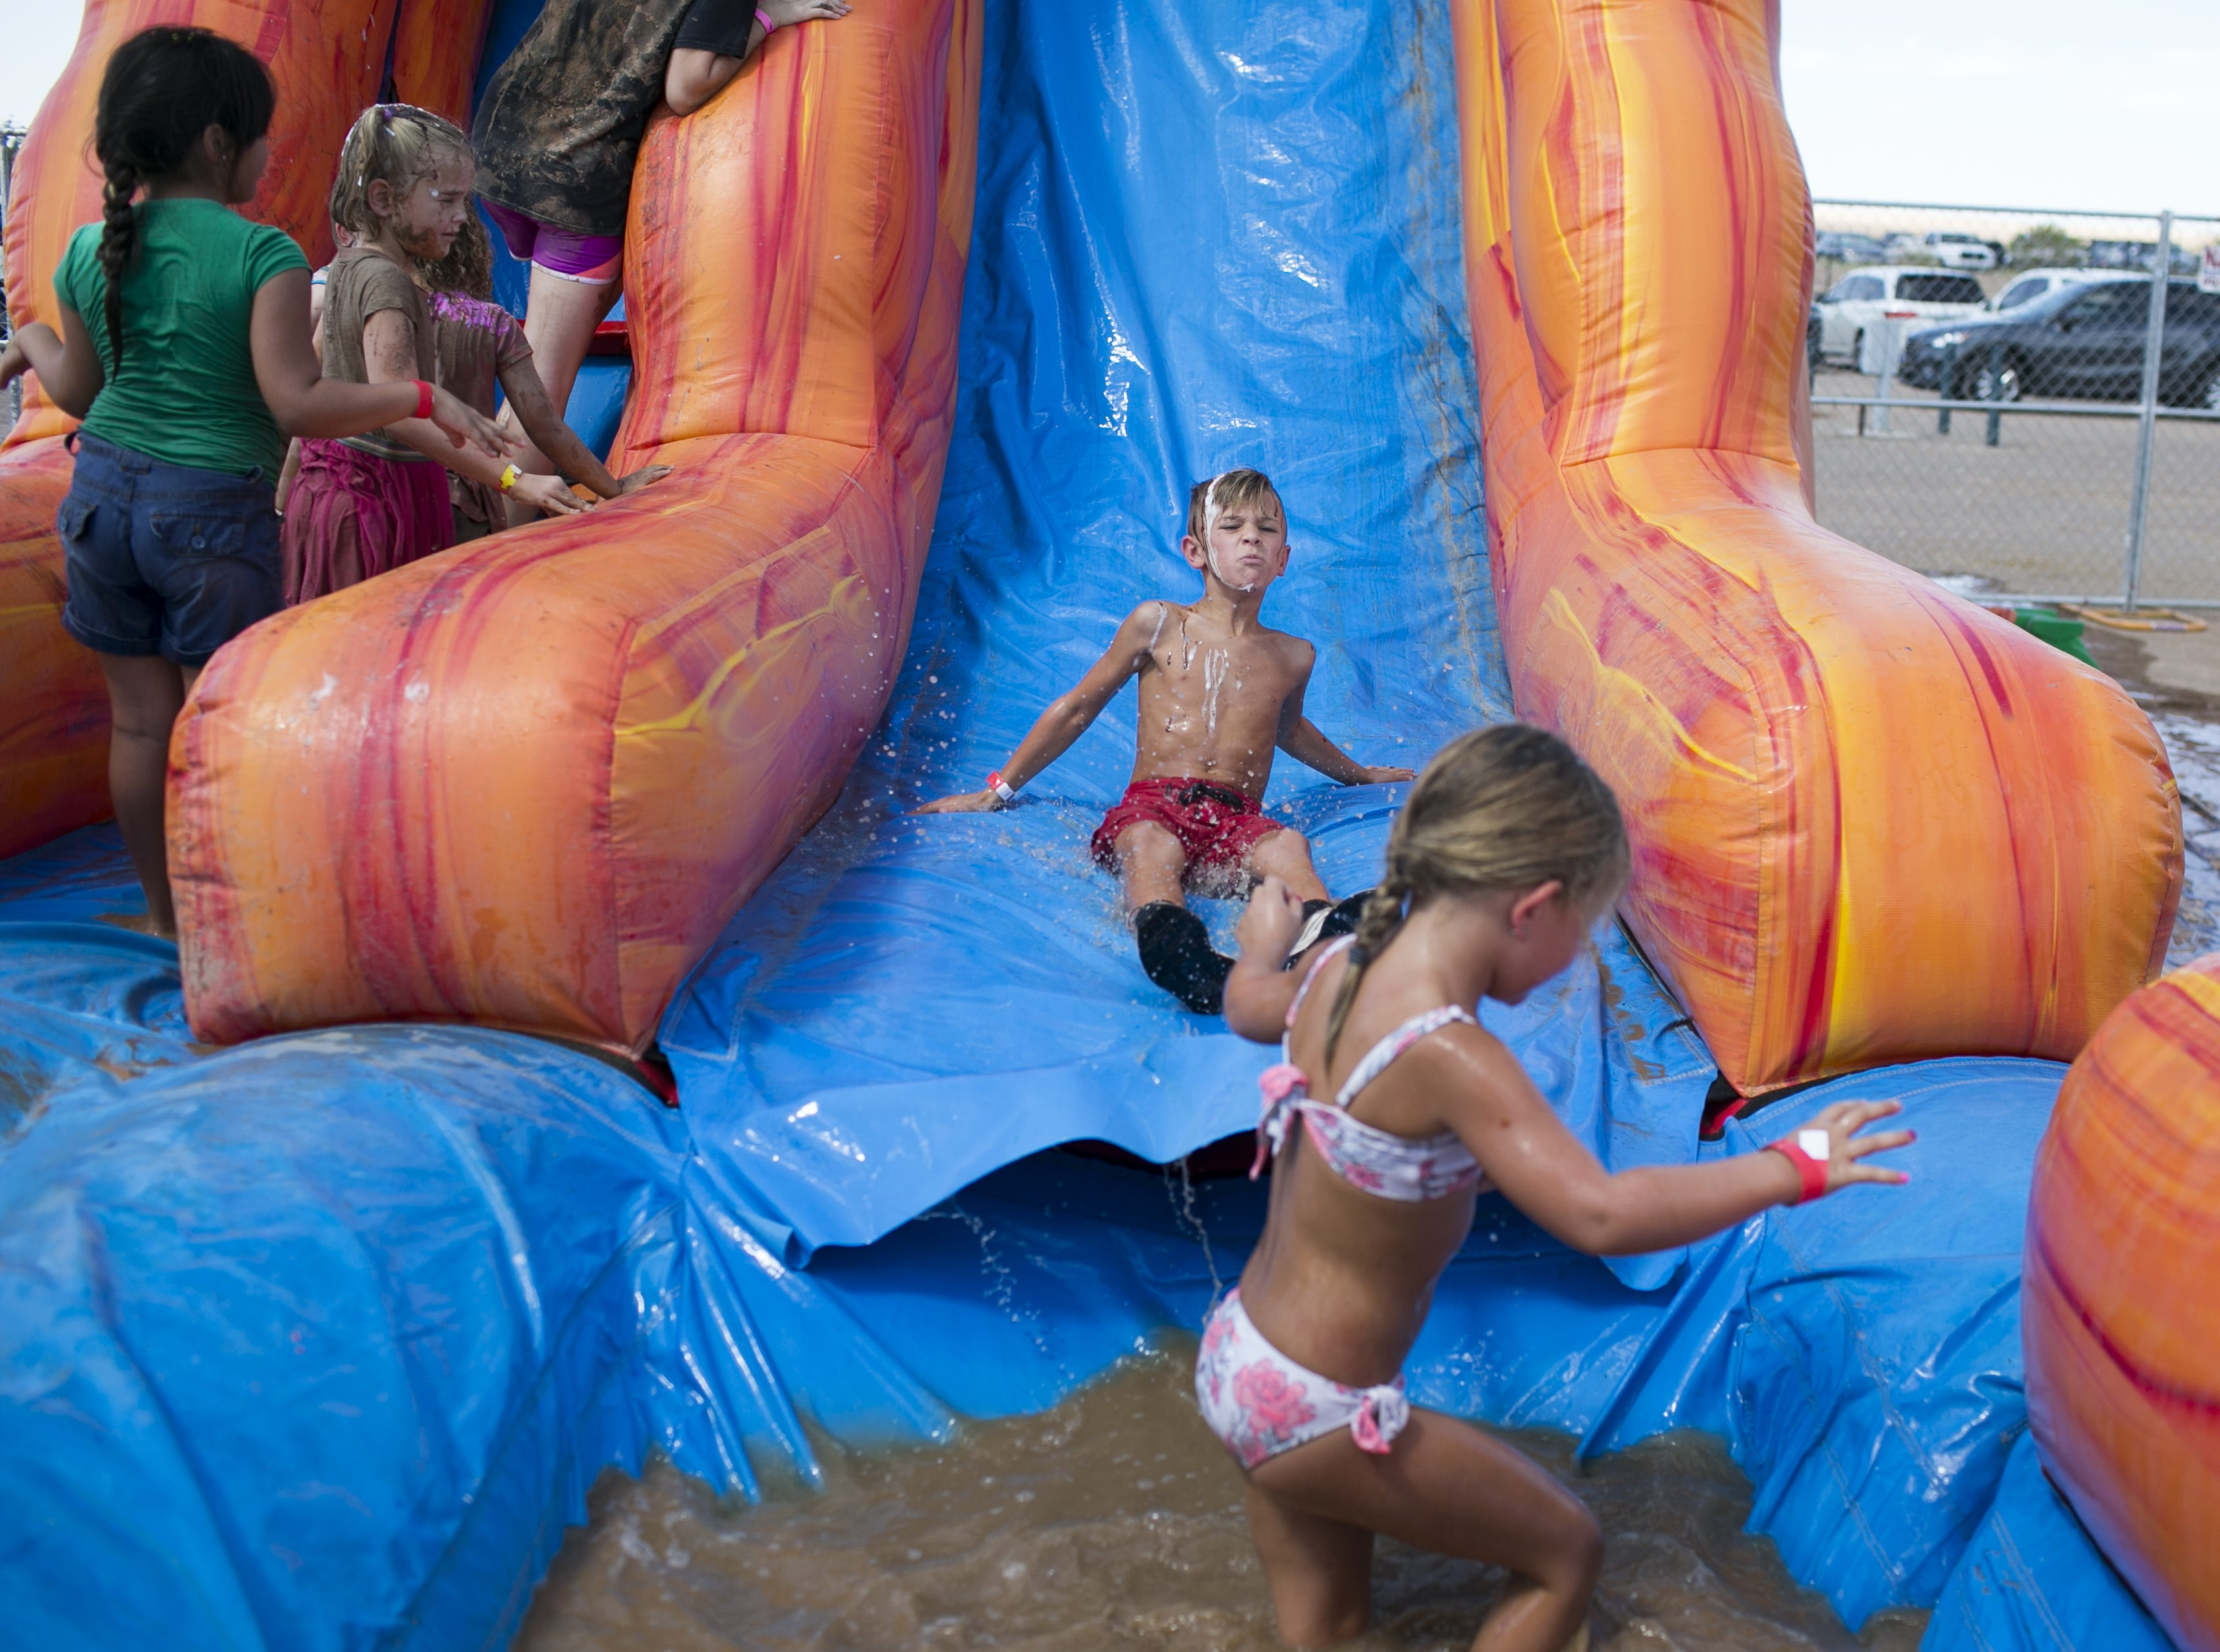 6-year-old Easton Tamuty slides into a pool of muddy water at the third annual Messy Fest in Queen Creek on Saturday, Sept. 15, 2018.